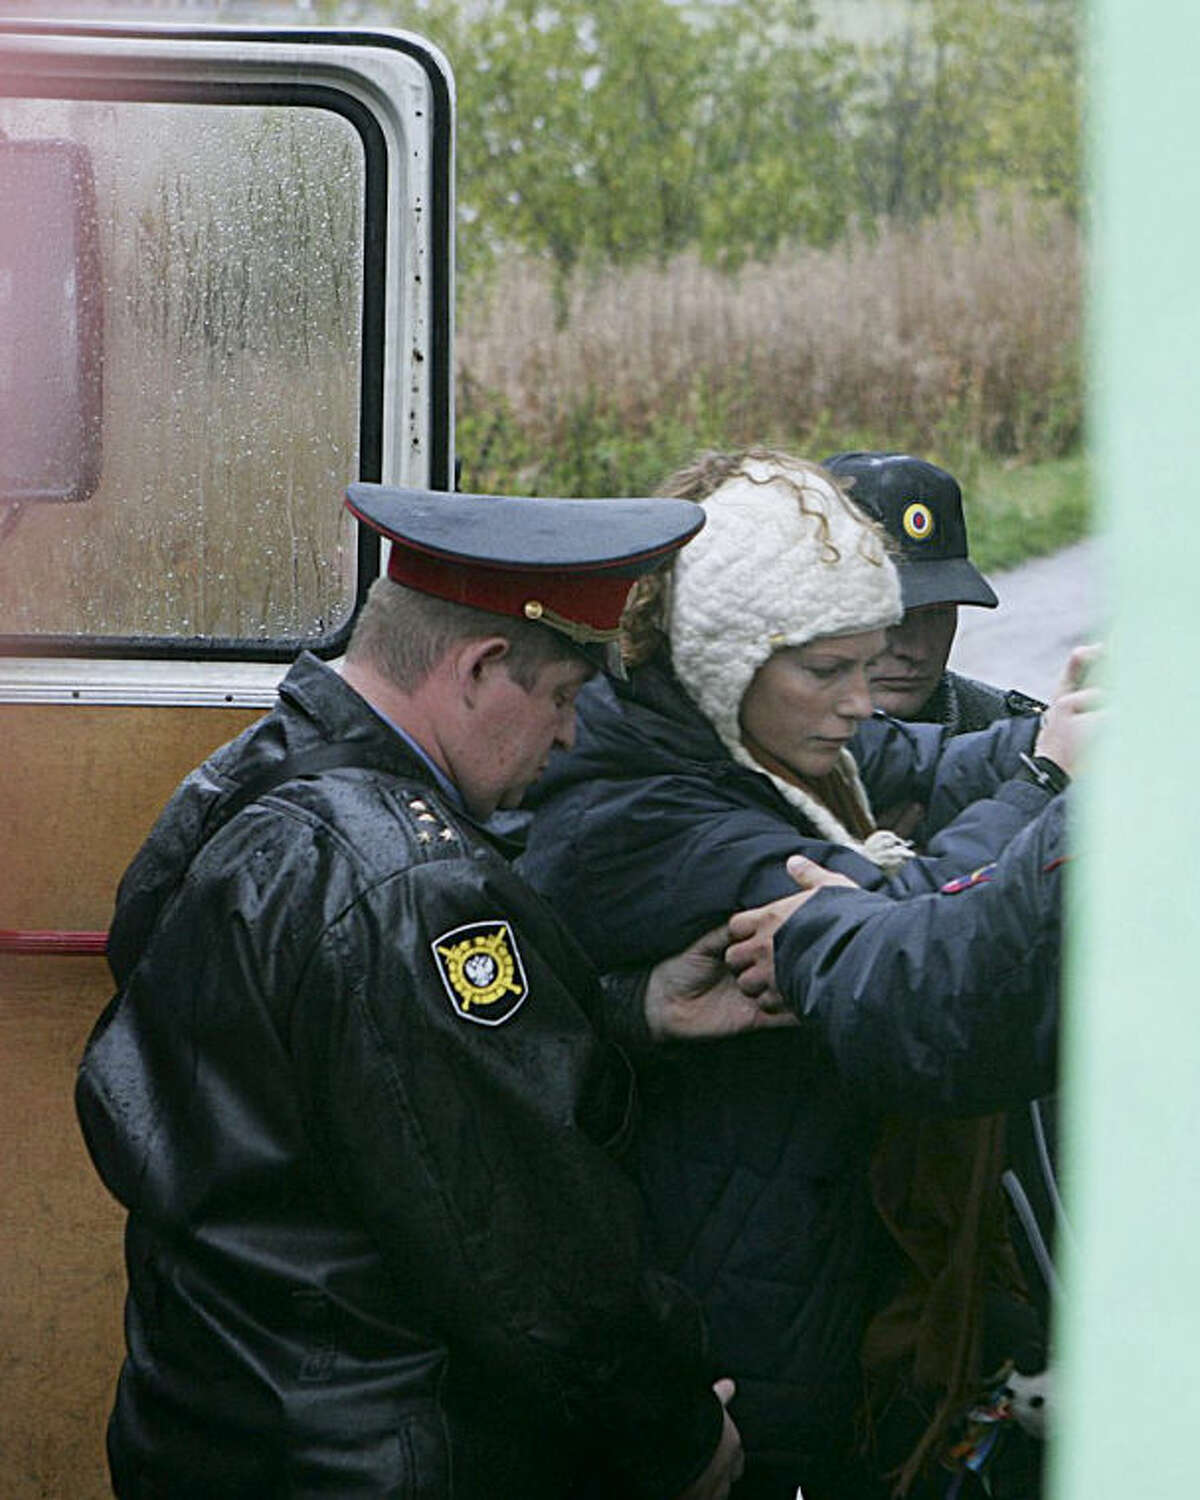 In this photo dated Thursday Sept. 26, 2013 by environmental activist group Greenpeace, Russian police officers escort a Greenpeace activist, no name available, to a court room in Murmansk, Russia. A Russian court on Thursday jailed two of the 30-member Greenpeace team protesting near an oil platform last week. Two members of the group were detained Sept. 18 in their attempt to scale the Russian Arctic platform. The Coast Guard seized Greenpeace's ship the next day and towed it with the 30 activists aboard, to Murmansk. The activists are being investigated for piracy. (AP Photo/Greenpeace)